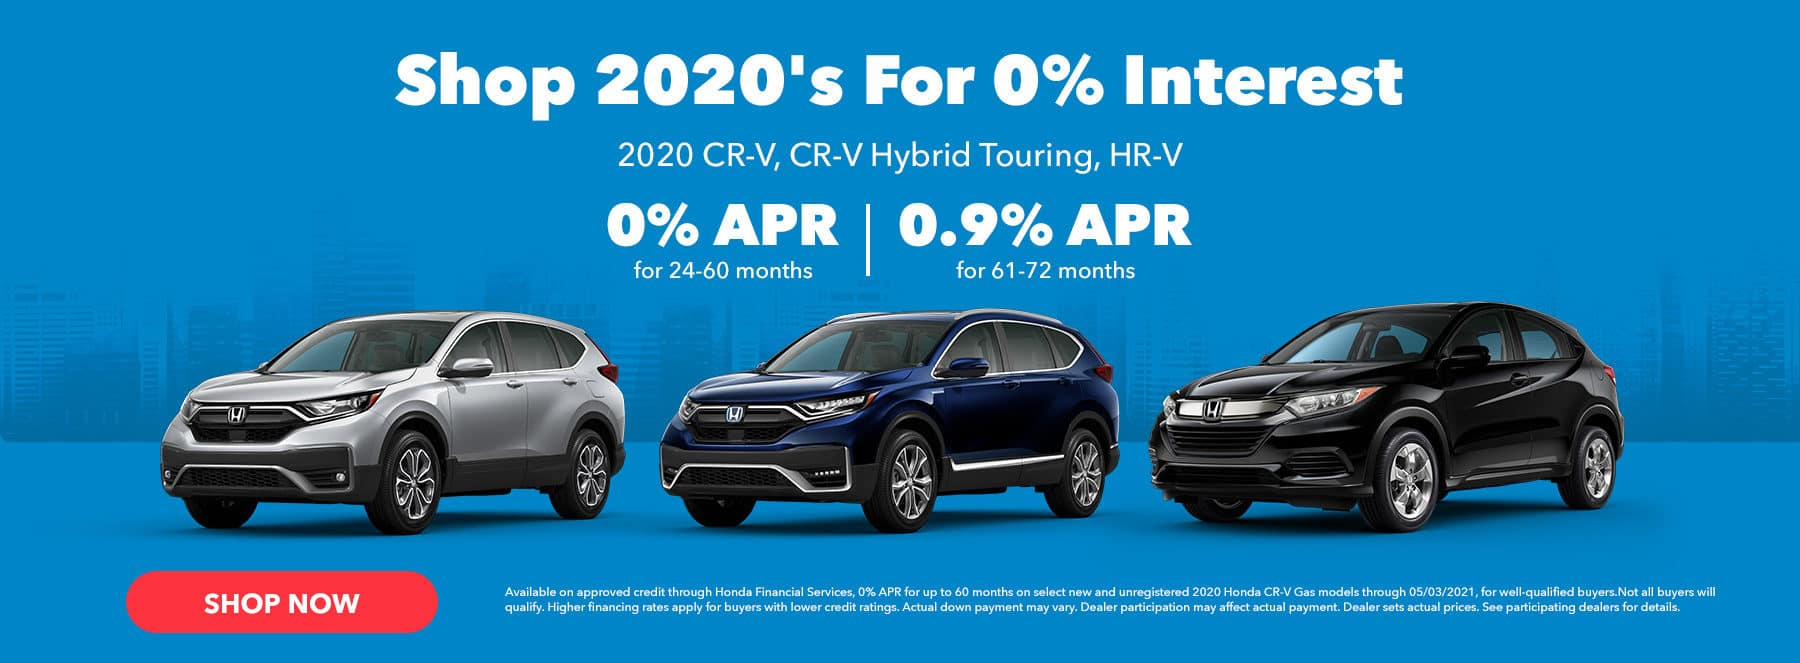 Shop 2020's For 0% Interest Subtext: 2020 - CR-V, CR-V Hybrid Touring, HR-V